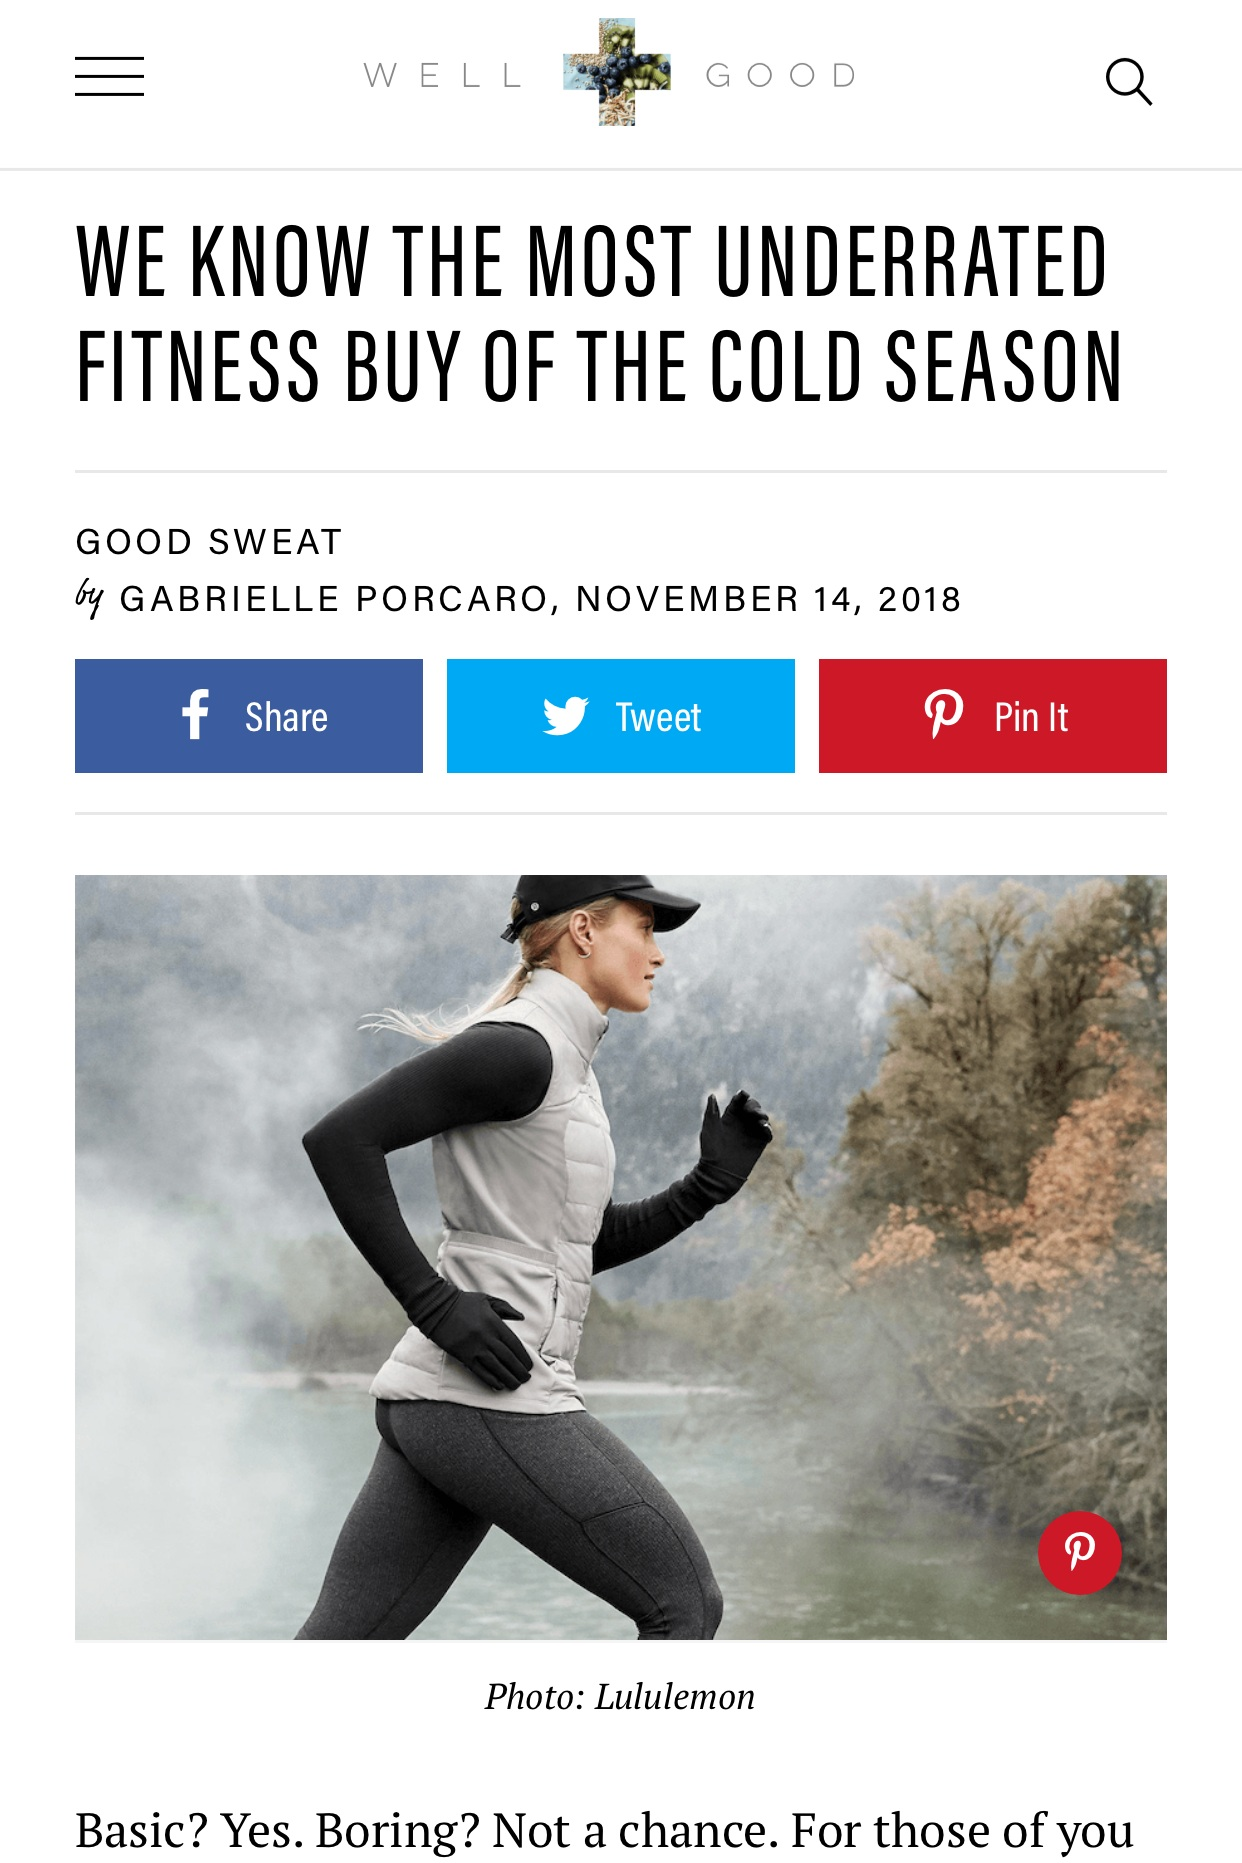 Well & Good: We Know the Most Underrated Fitness Buy of the Cold Season - November 14, 2018